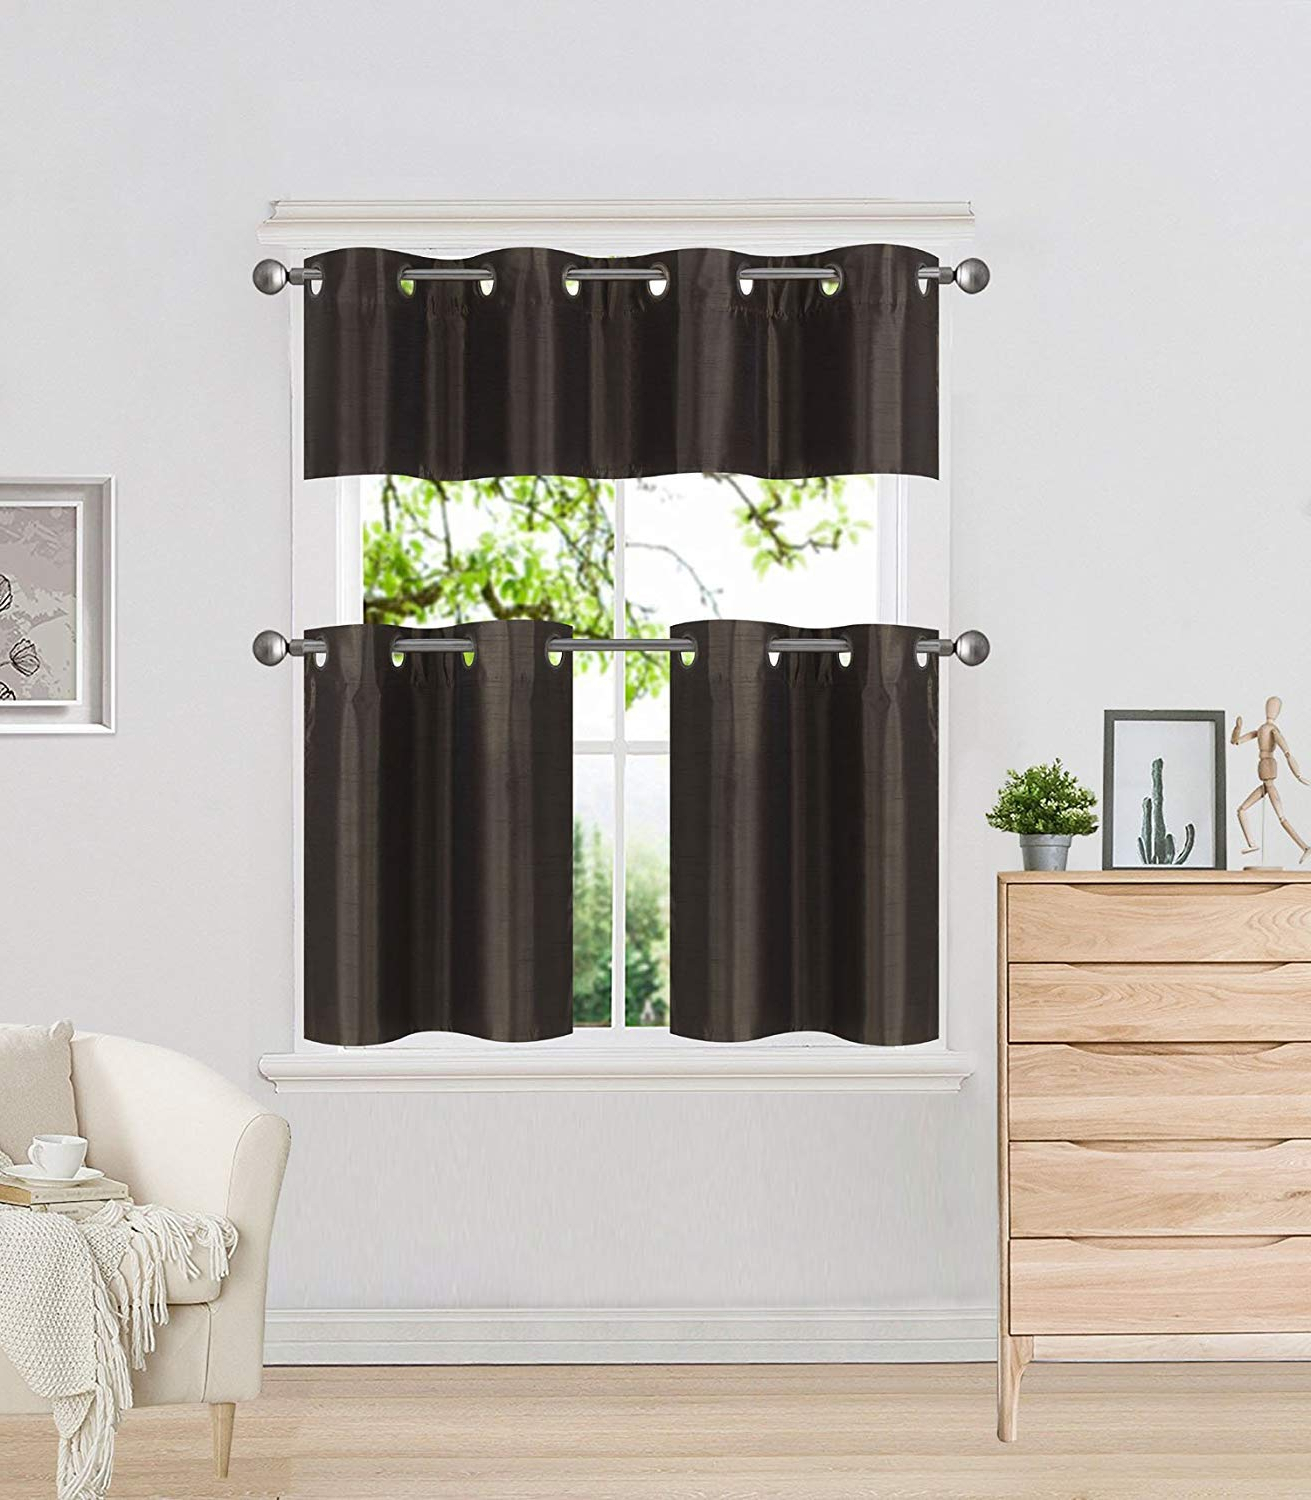 Faux Silk 3 Piece Kitchen Curtain Sets Intended For Latest Diamondhome 3 Piece Faux Silk Grommet Lined Thermal Blackout Kitchen Window Curtain Set 2 Tiers & 1 Valance (brown) (View 20 of 20)